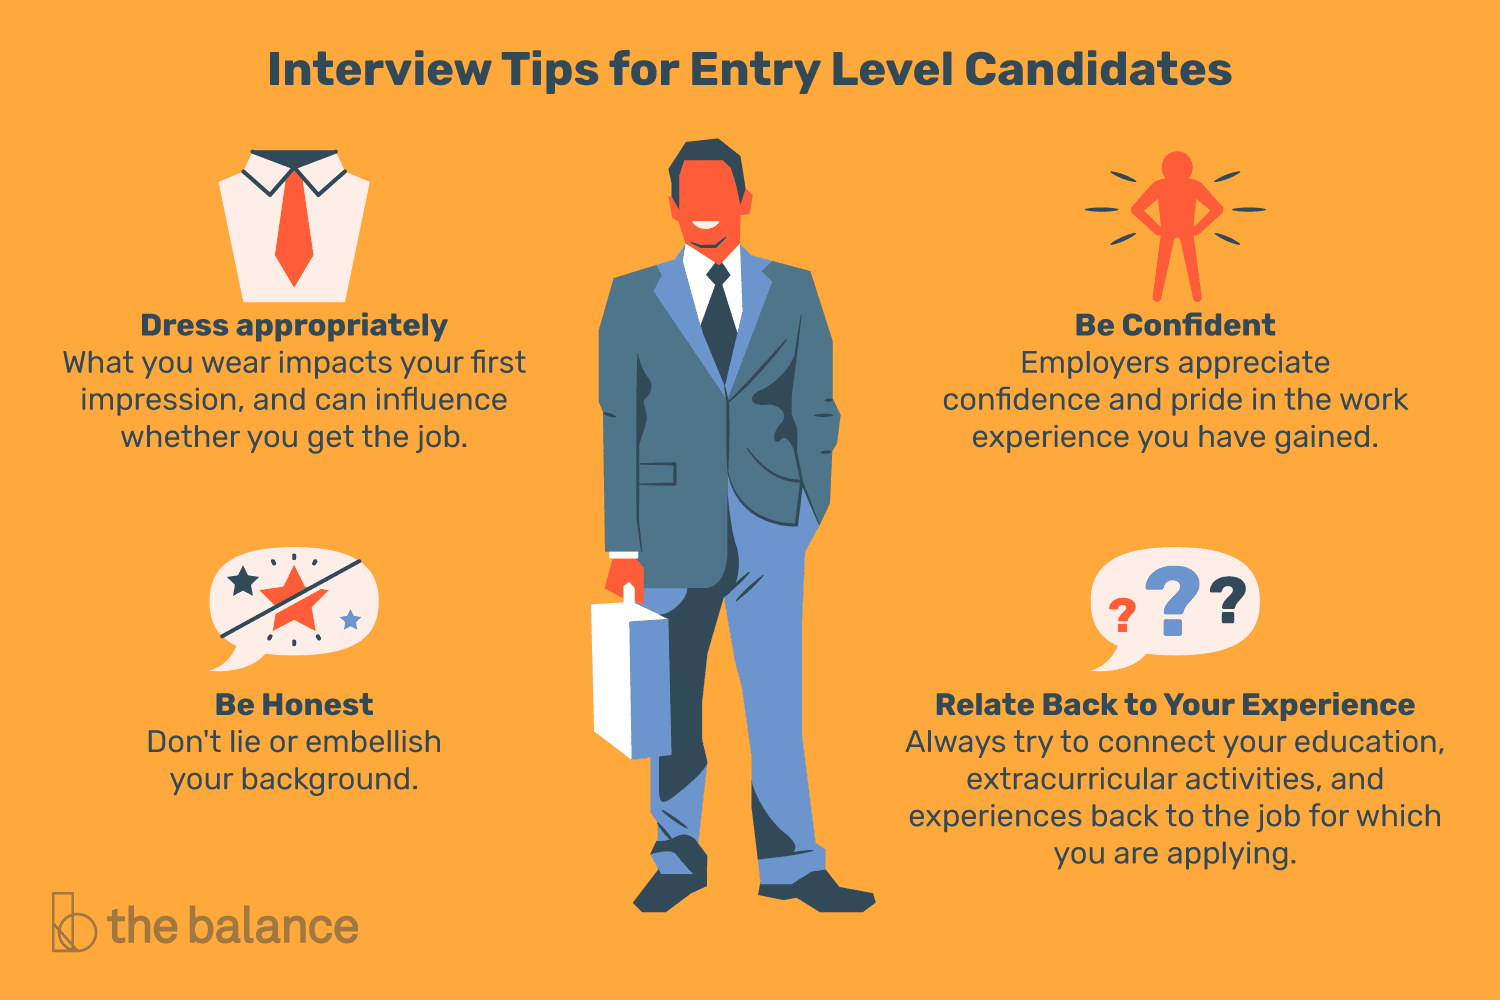 5 Ways To Make A Good First Impression For An Interview In